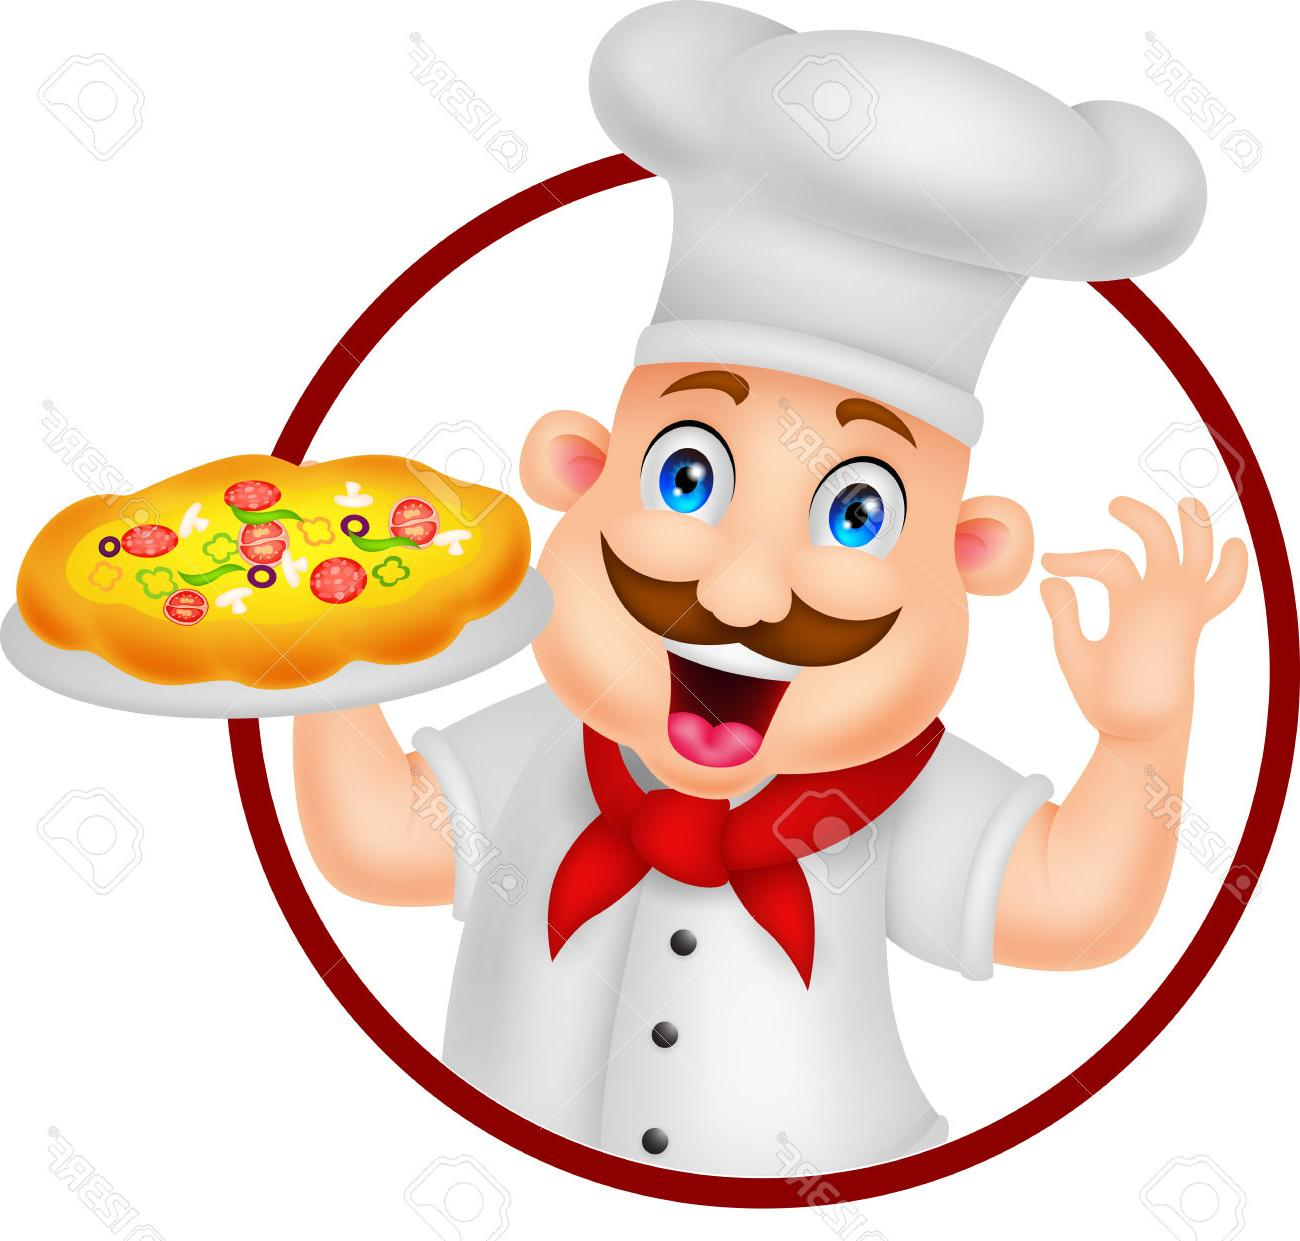 1300x1241 Best 15 Cartoon Chef Character With Pizza Stock Vector Design